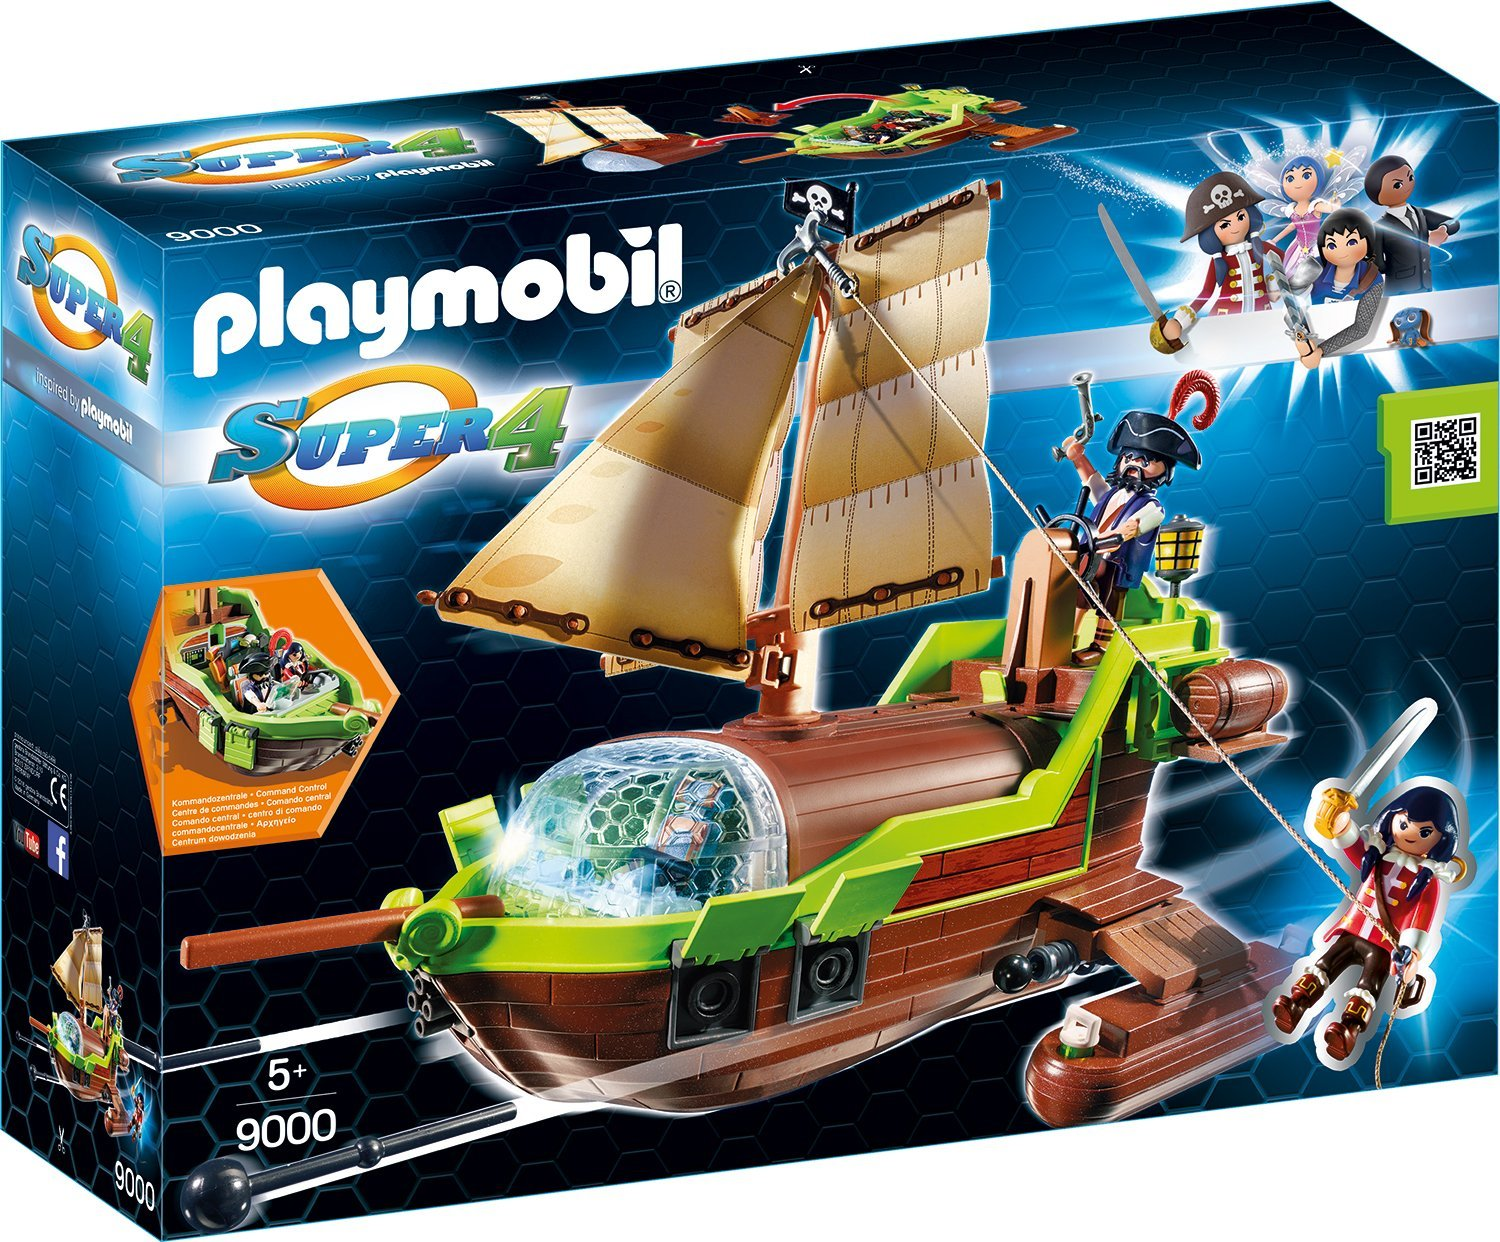 Playmobil Piraten Chamäleon amazon